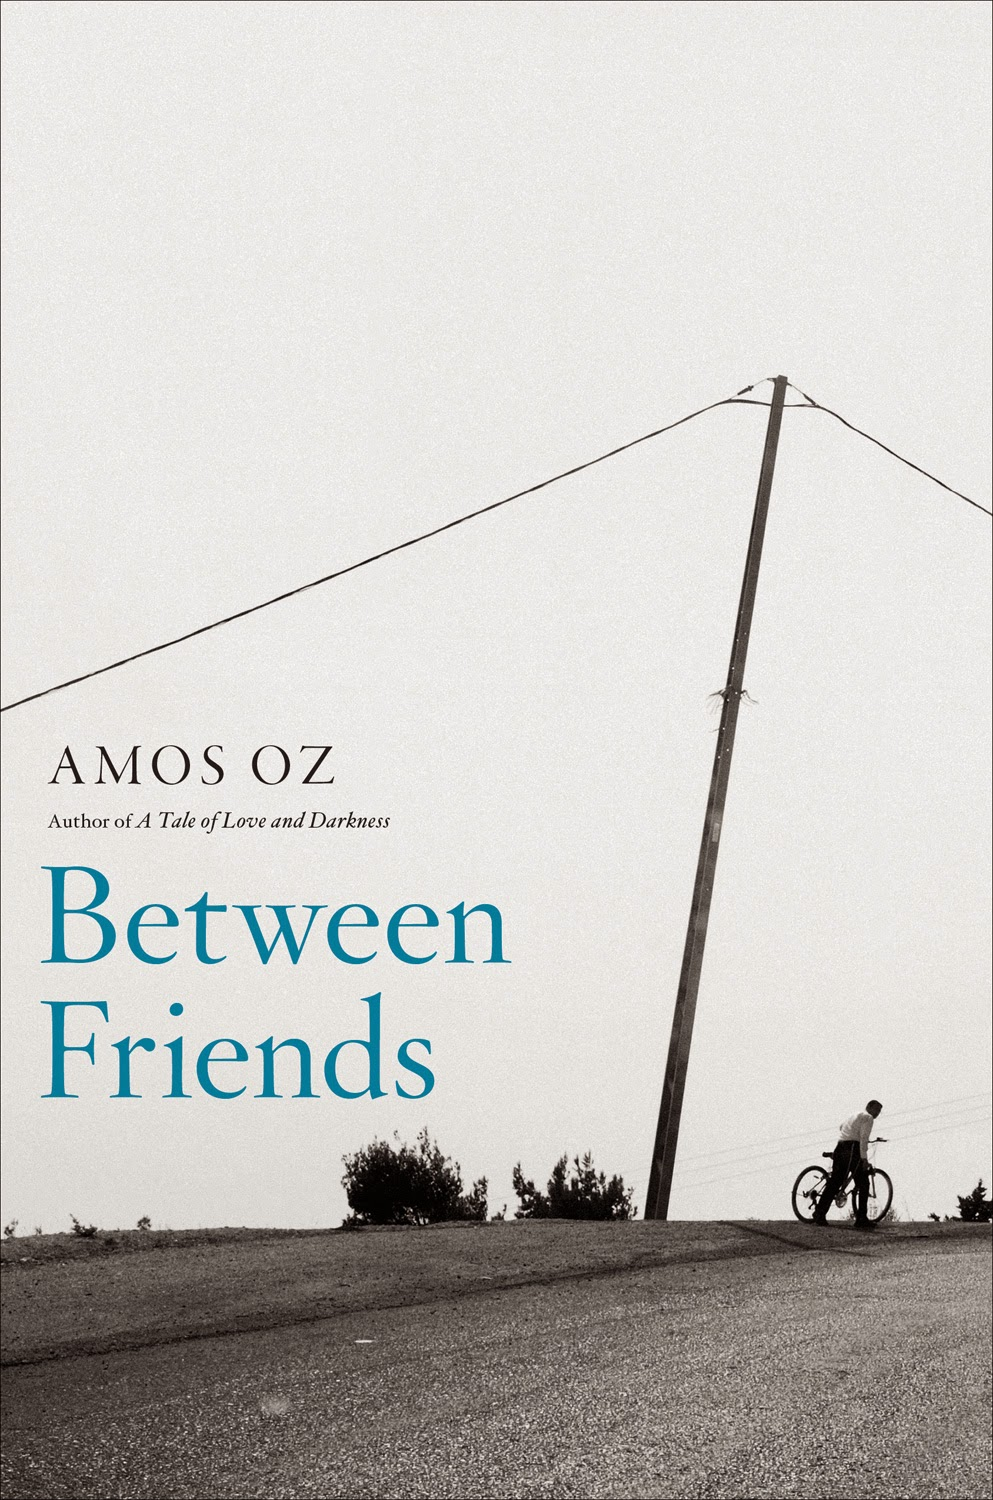 http://discover.halifaxpubliclibraries.ca/?q=title:%22between%20friends%22amos